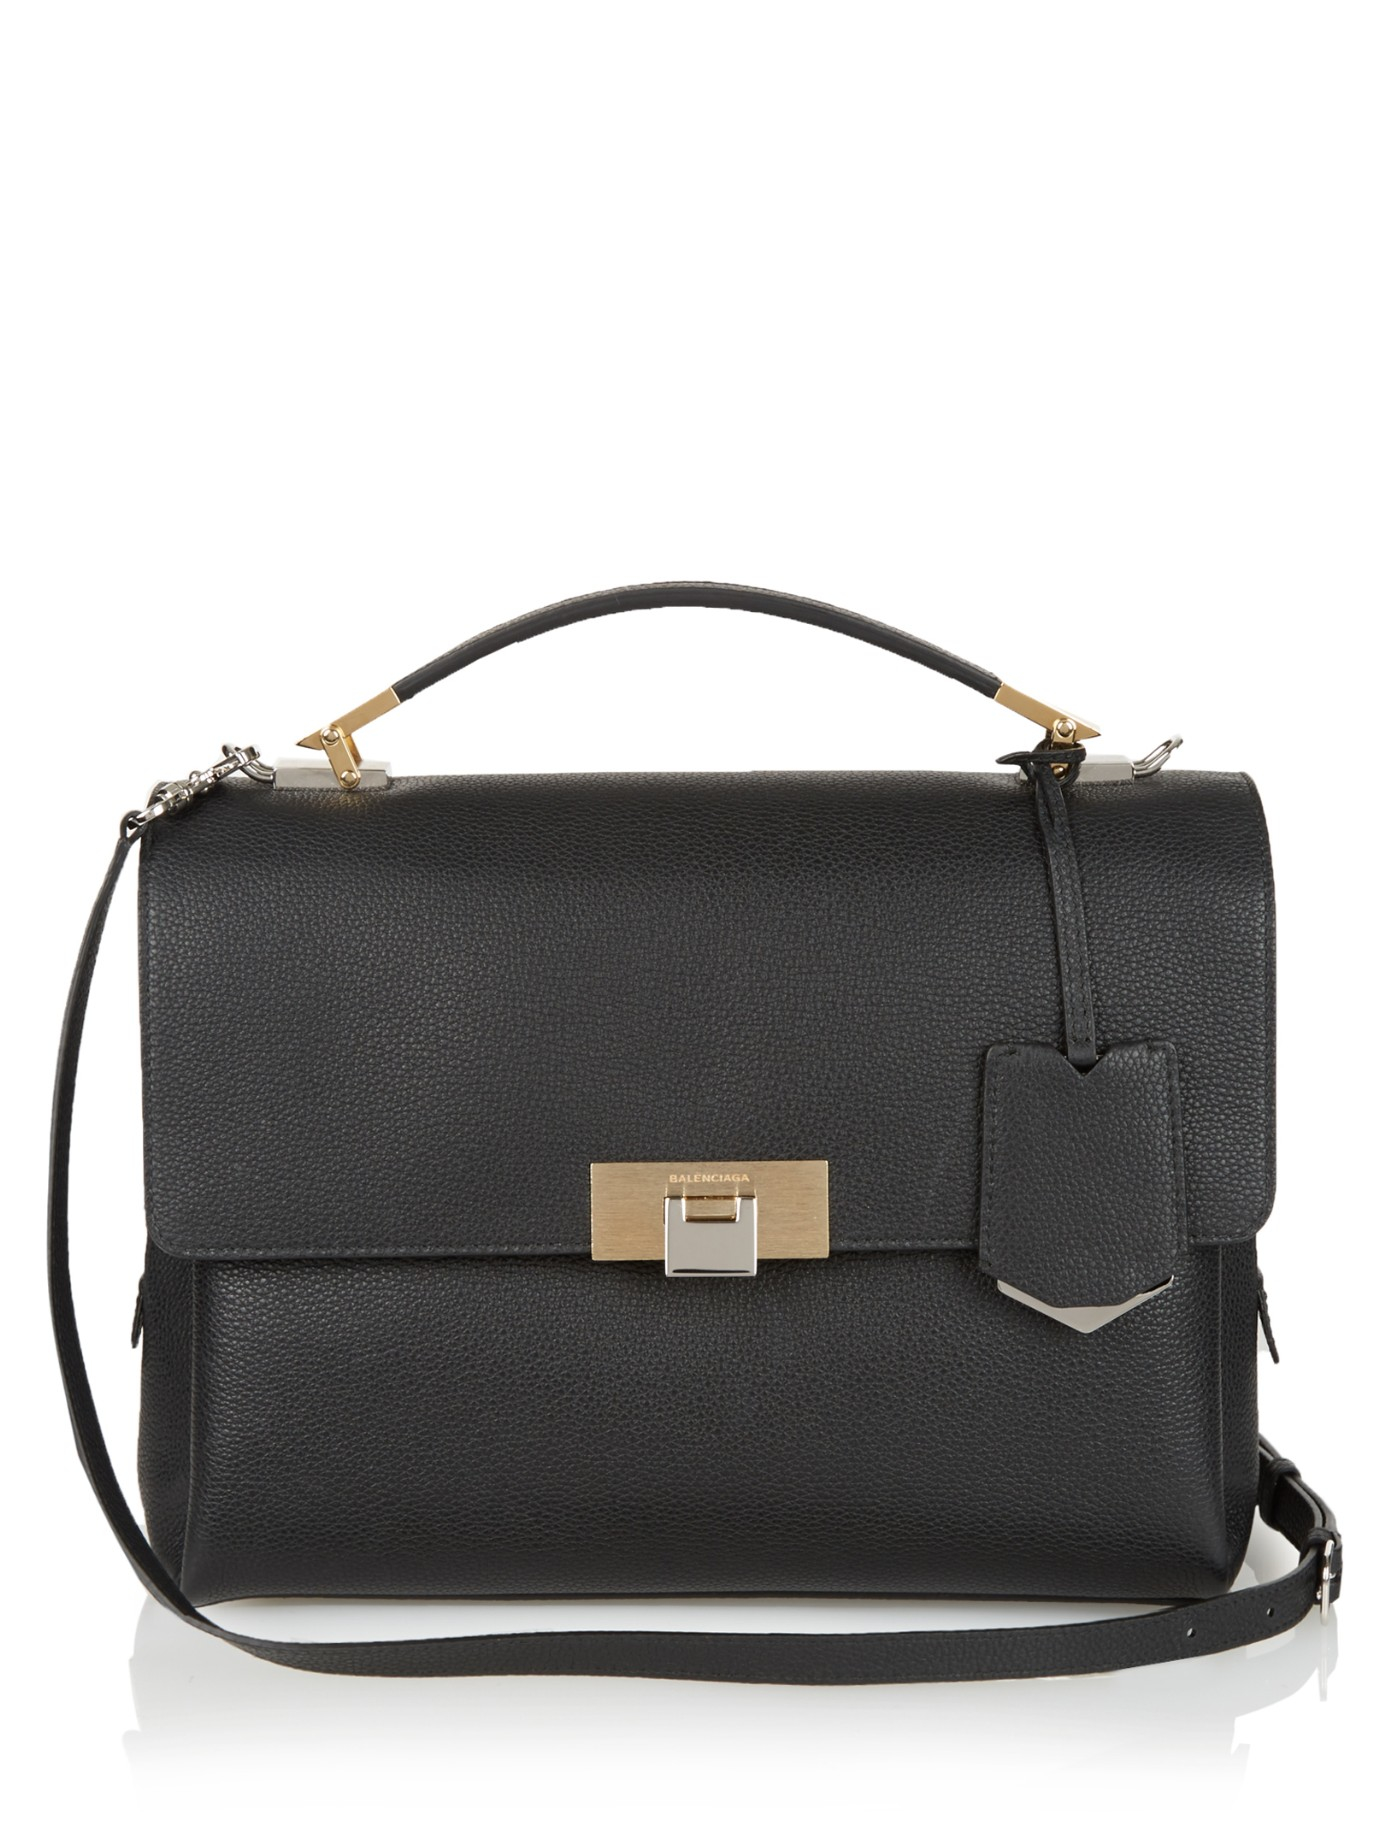 Balenciaga Le Dix Classic Soft Leather Shoulder Bag in Black | Lyst